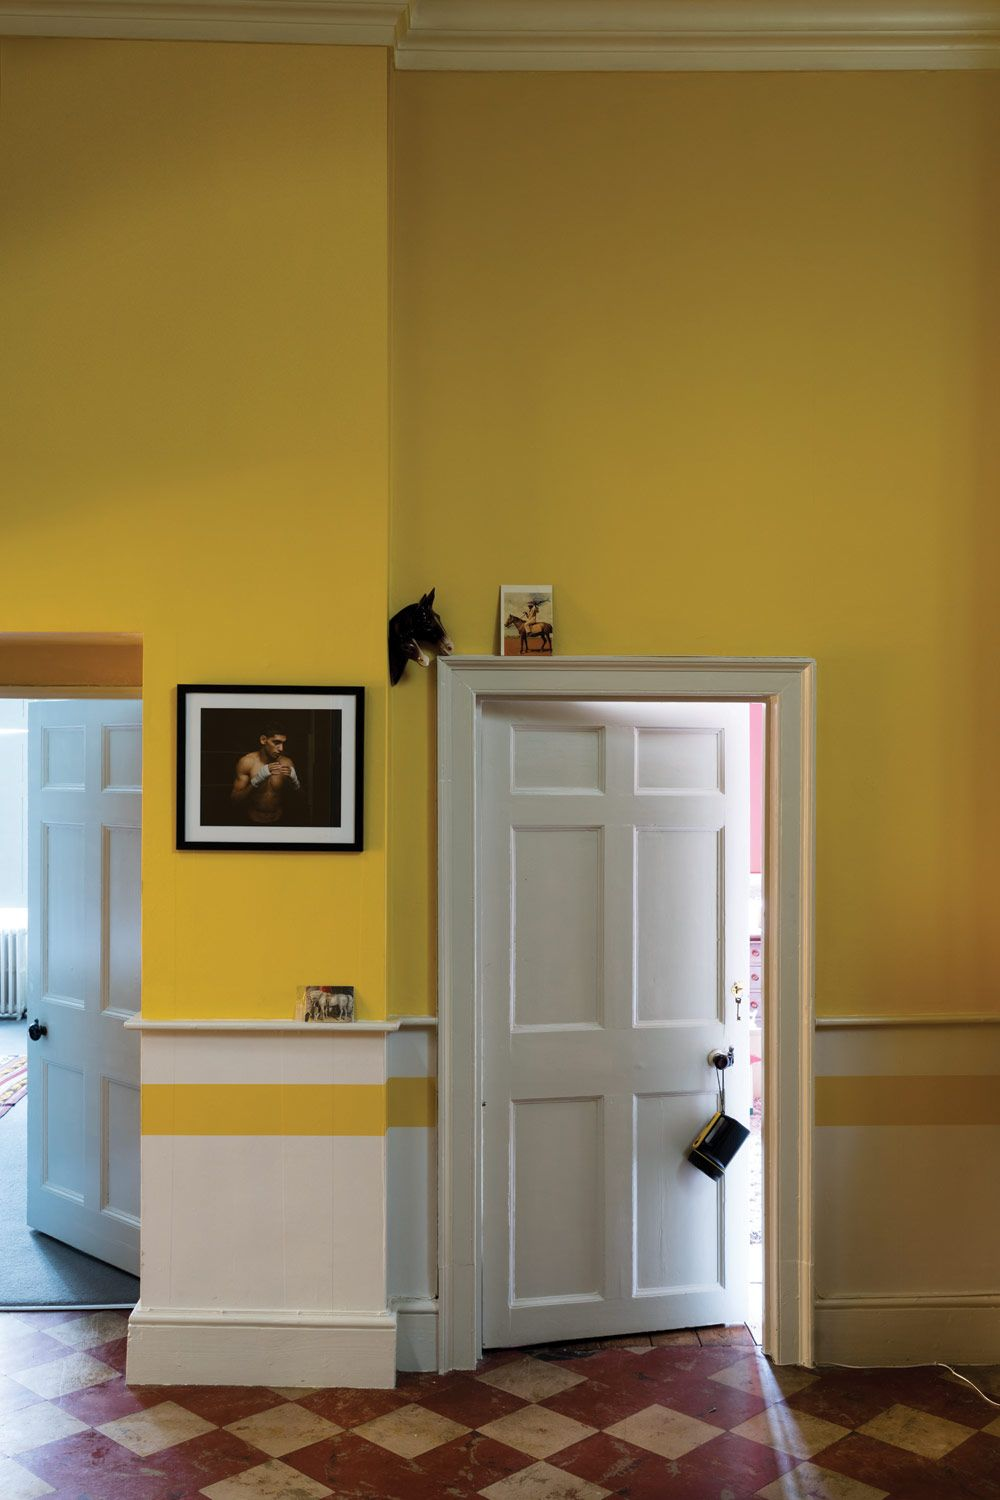 Farrow And Ball Kleurenwaaier.Farrow And Ball Nederland Farrow Ball Stiffkey Blue 281 Paint Paper Nl